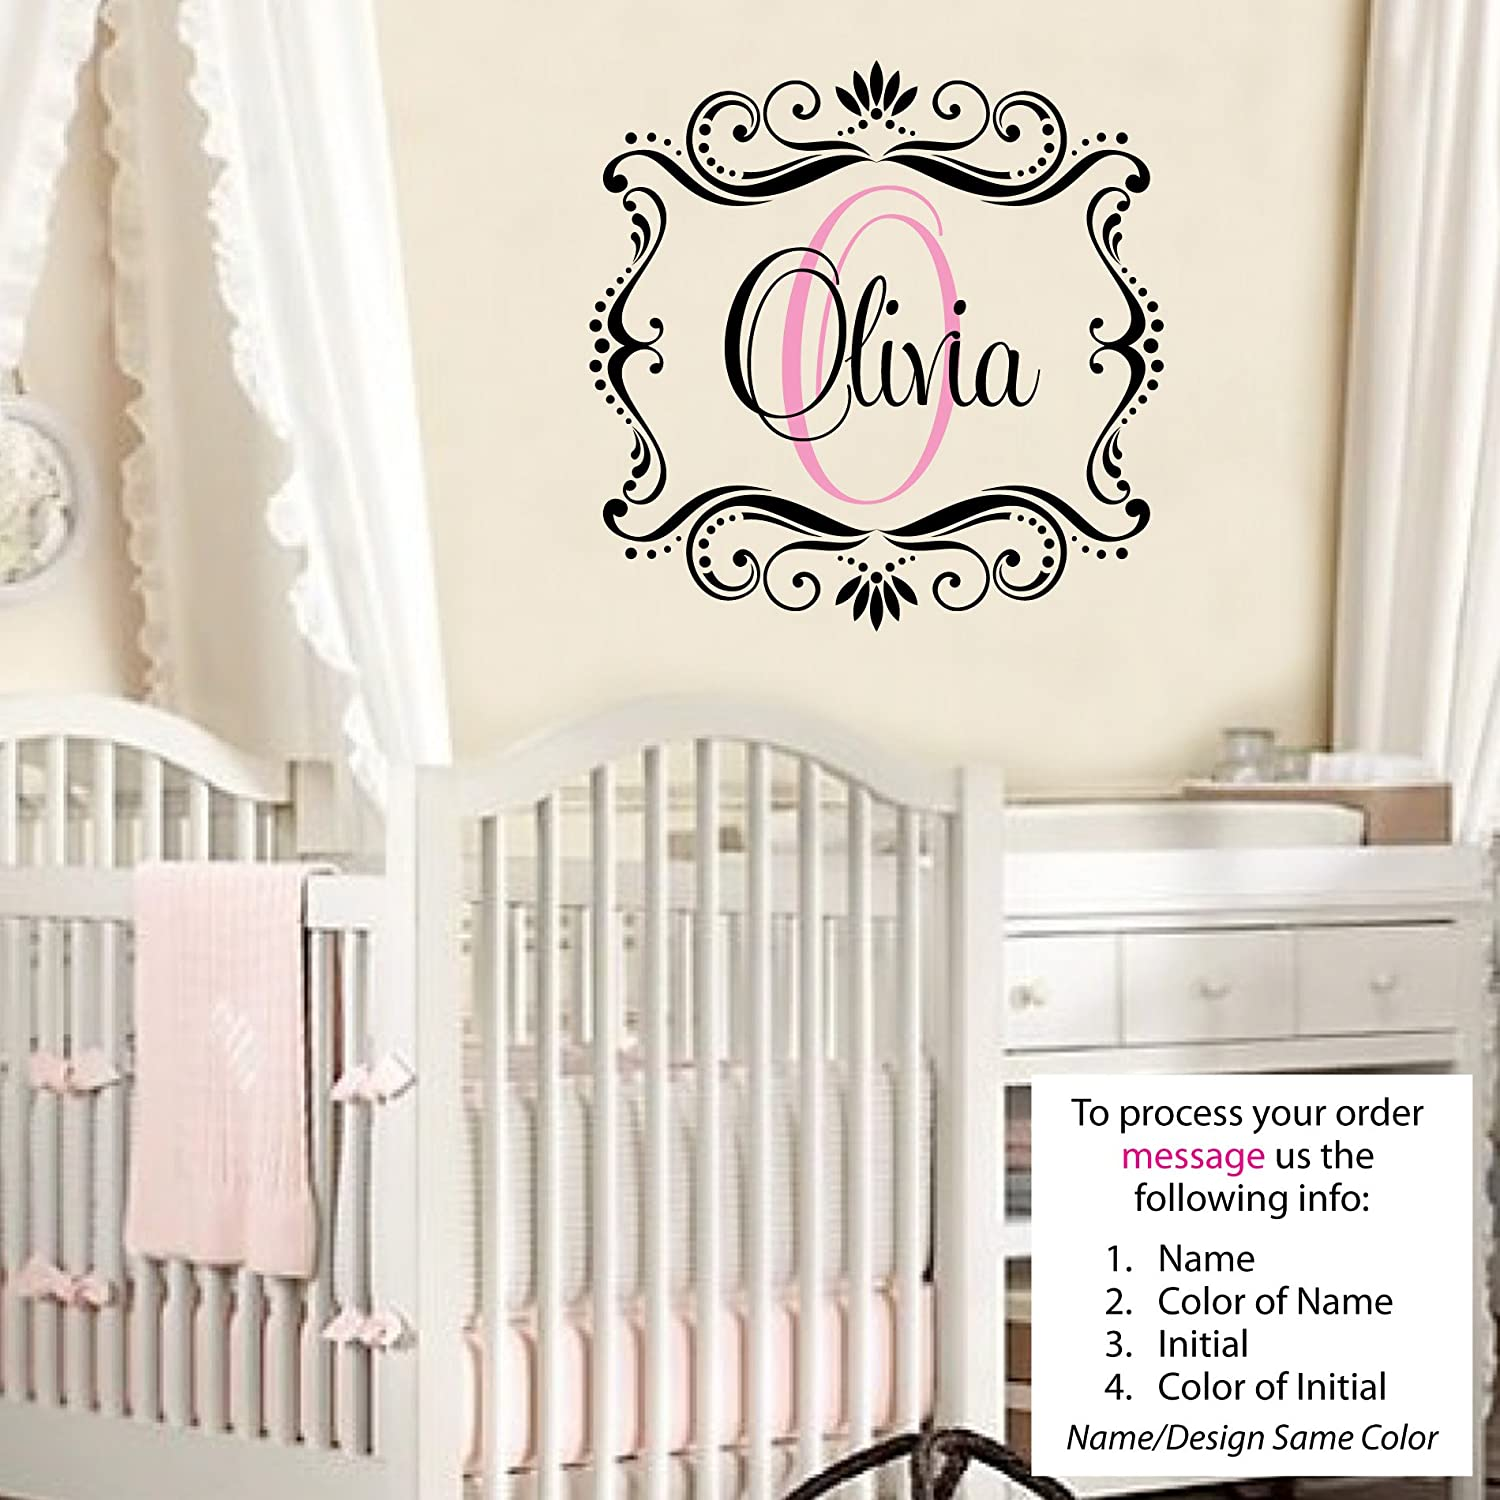 Olivia wall decal childrens personalized name childrens wall art olivia wall decal childrens personalized name childrens wall art name wall decal monogram nursery decor amazon amipublicfo Choice Image